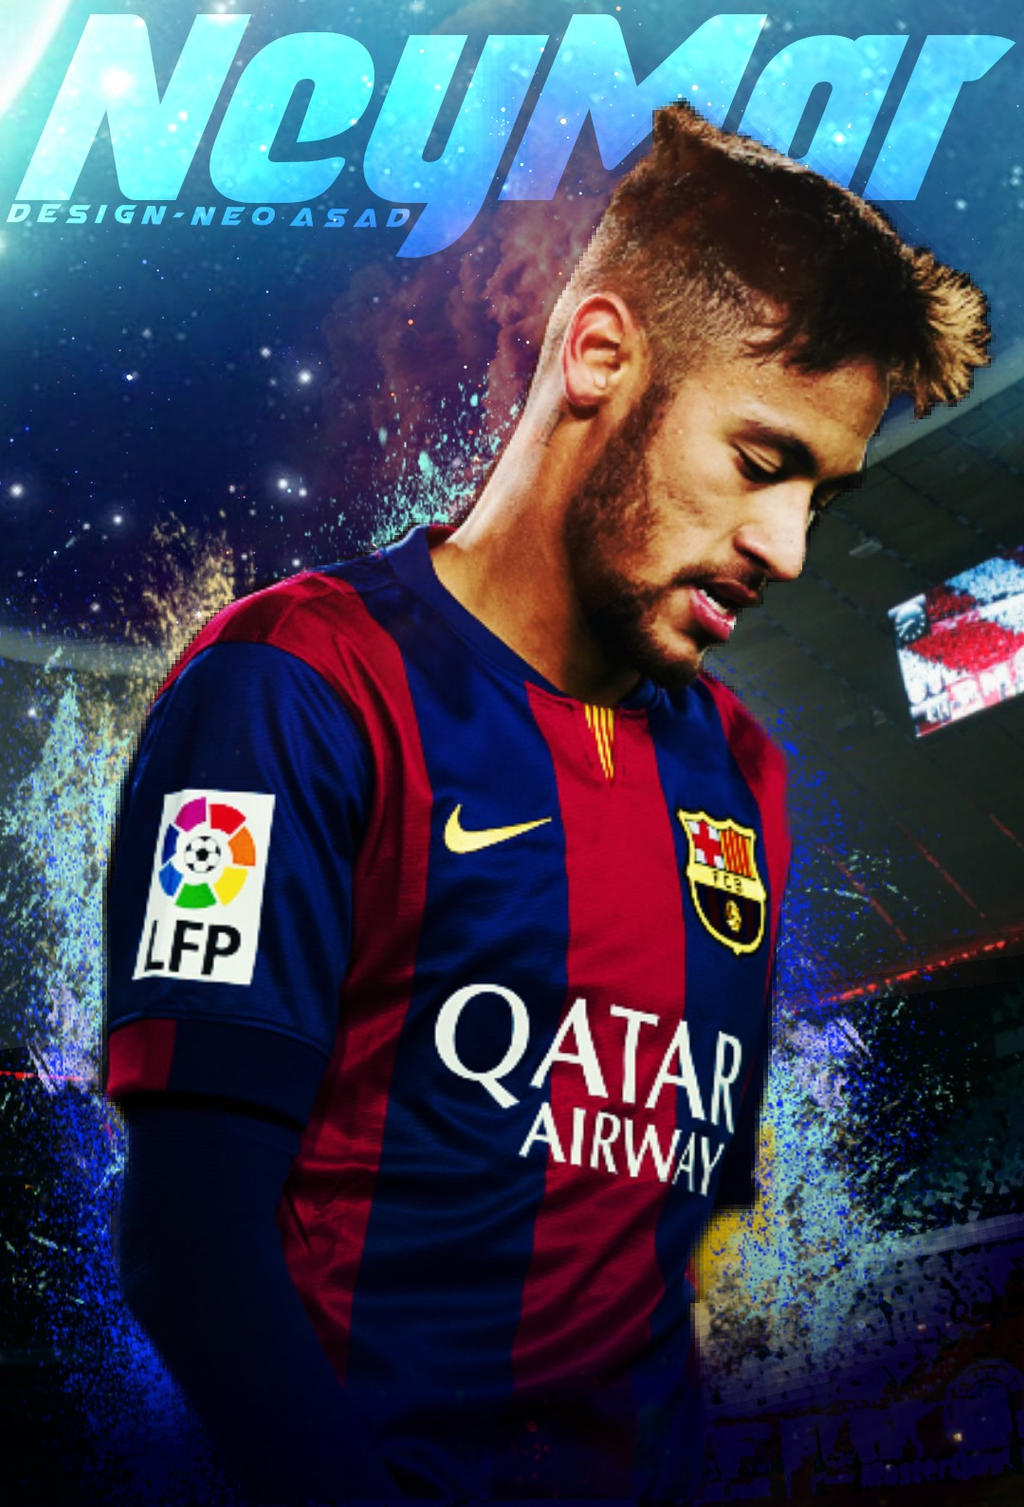 neymar -wallpaperneoasad on deviantart